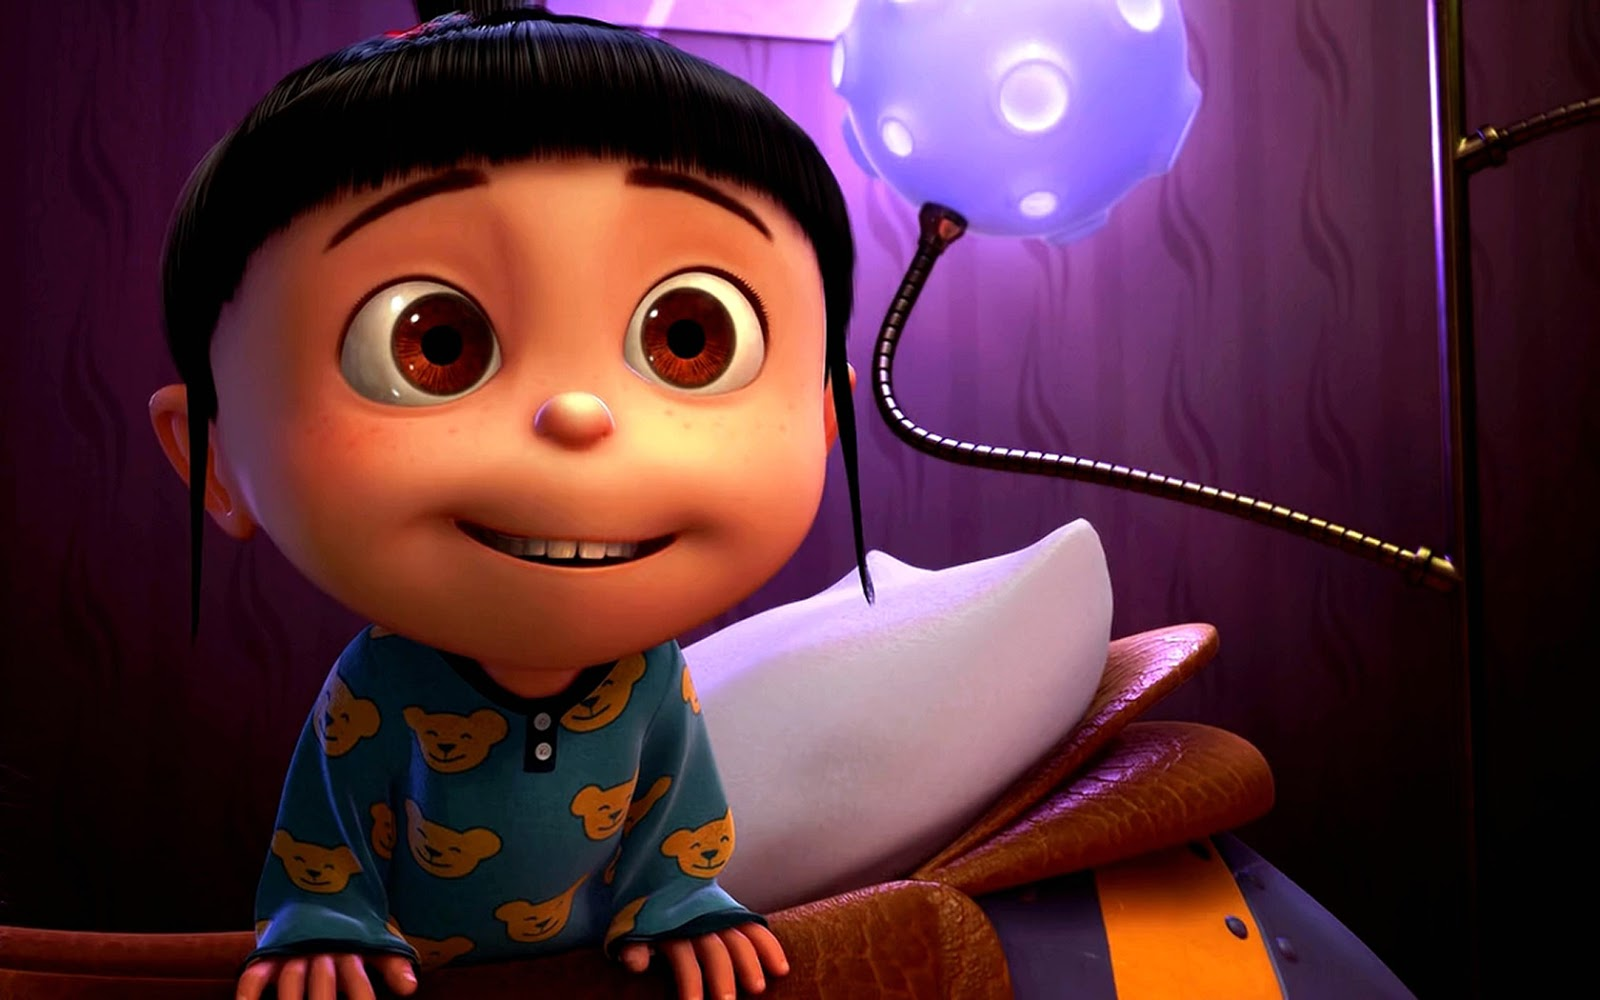 agnes despicable me hd wallpapers free download wallpaper dawallpaperz. Black Bedroom Furniture Sets. Home Design Ideas